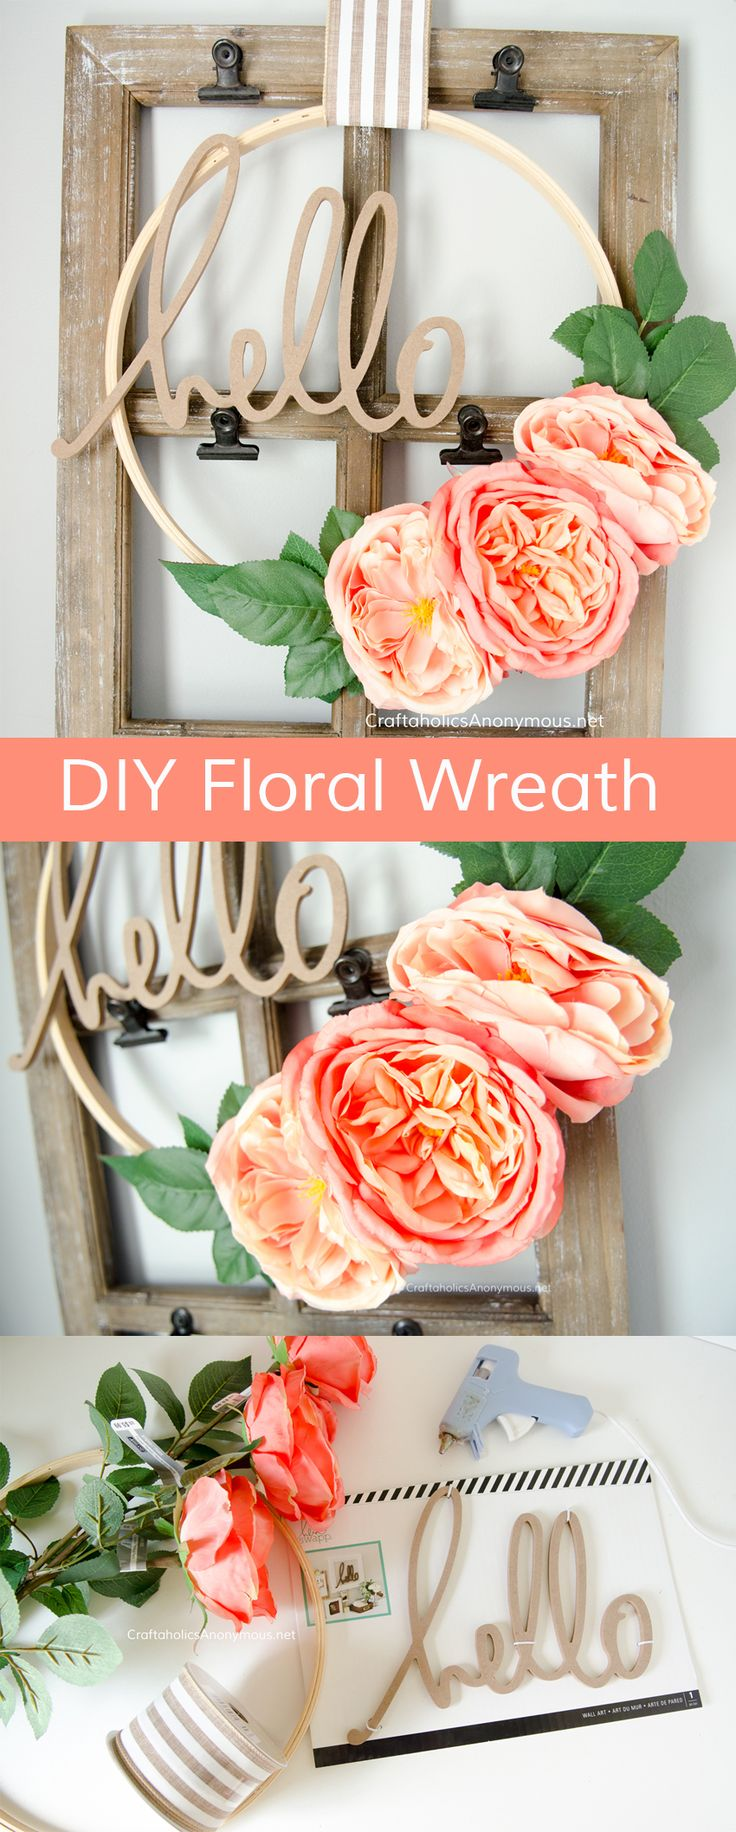 DIY Floral Embroidery Hoop Wreath found on CraftaholicsAnonymous.net